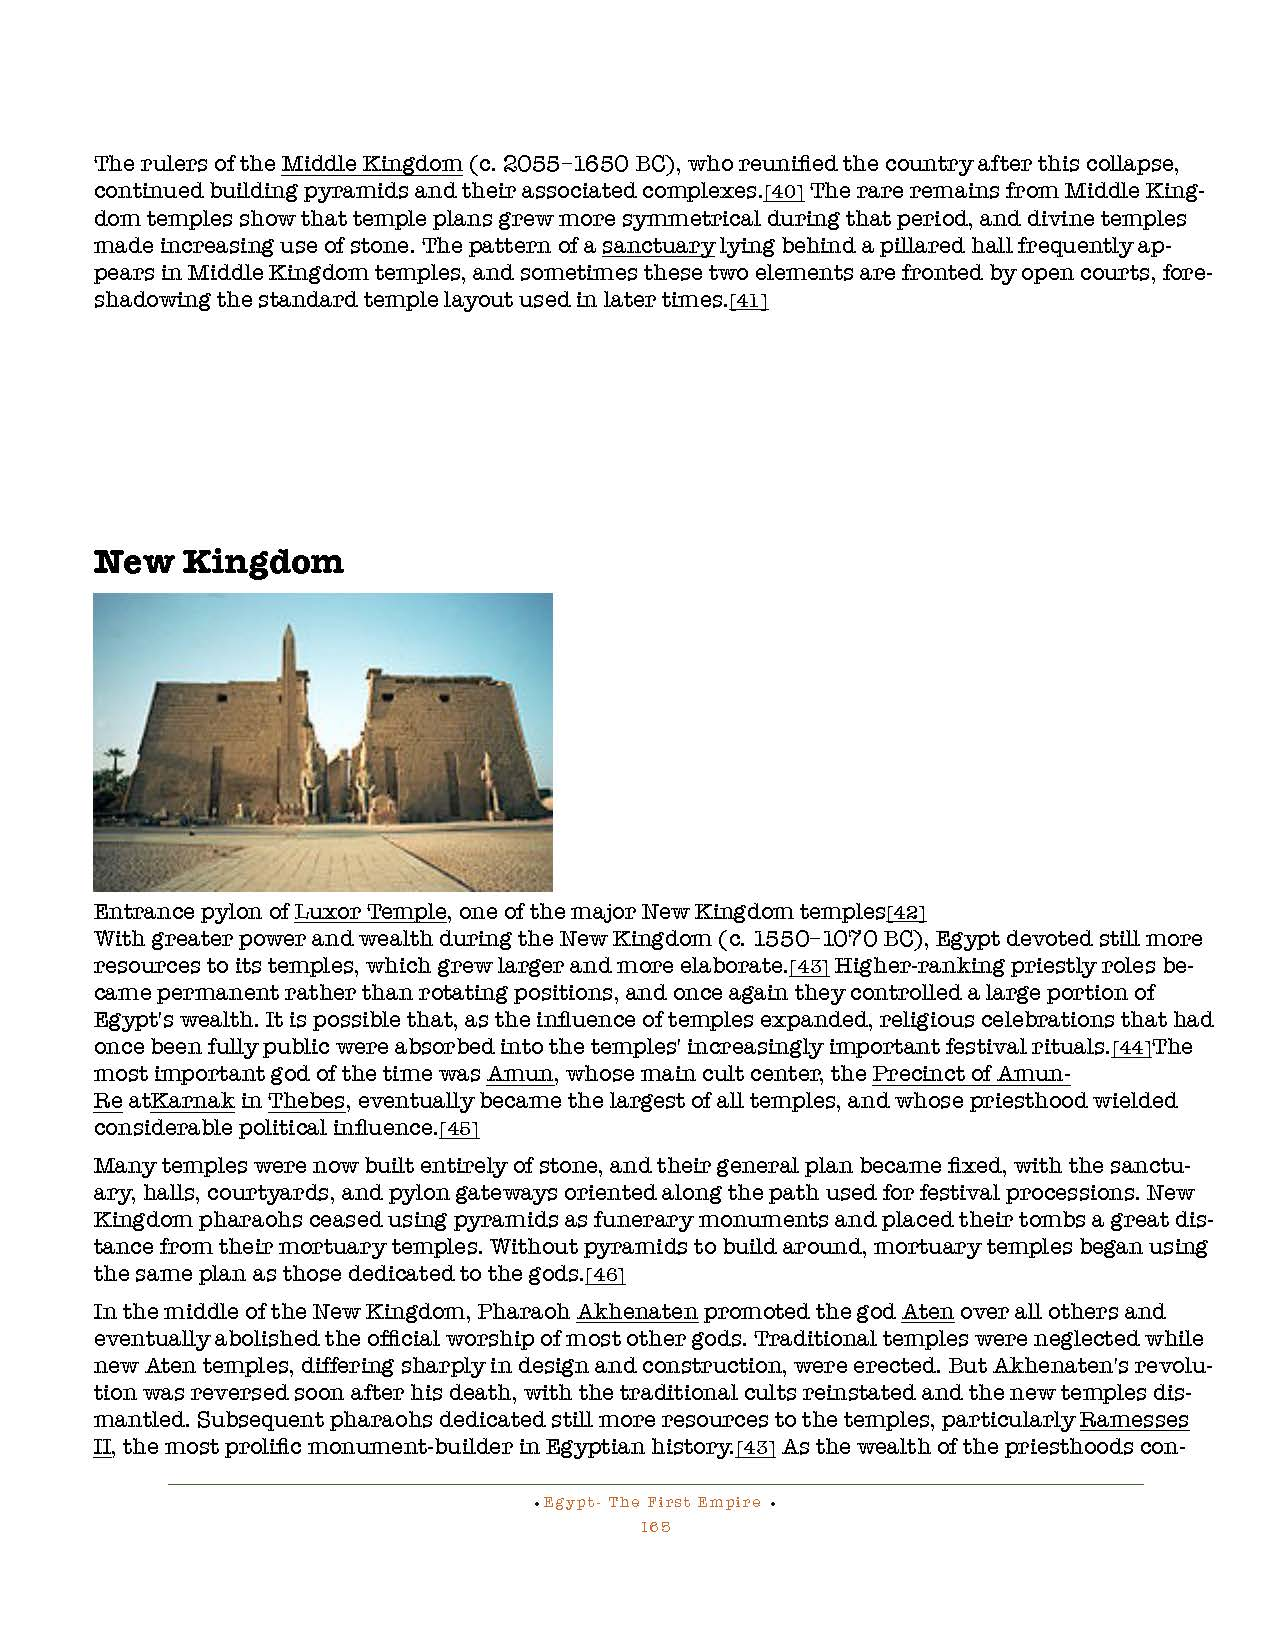 HOCE- Egypt  (First Empire) Notes_Page_165.jpg